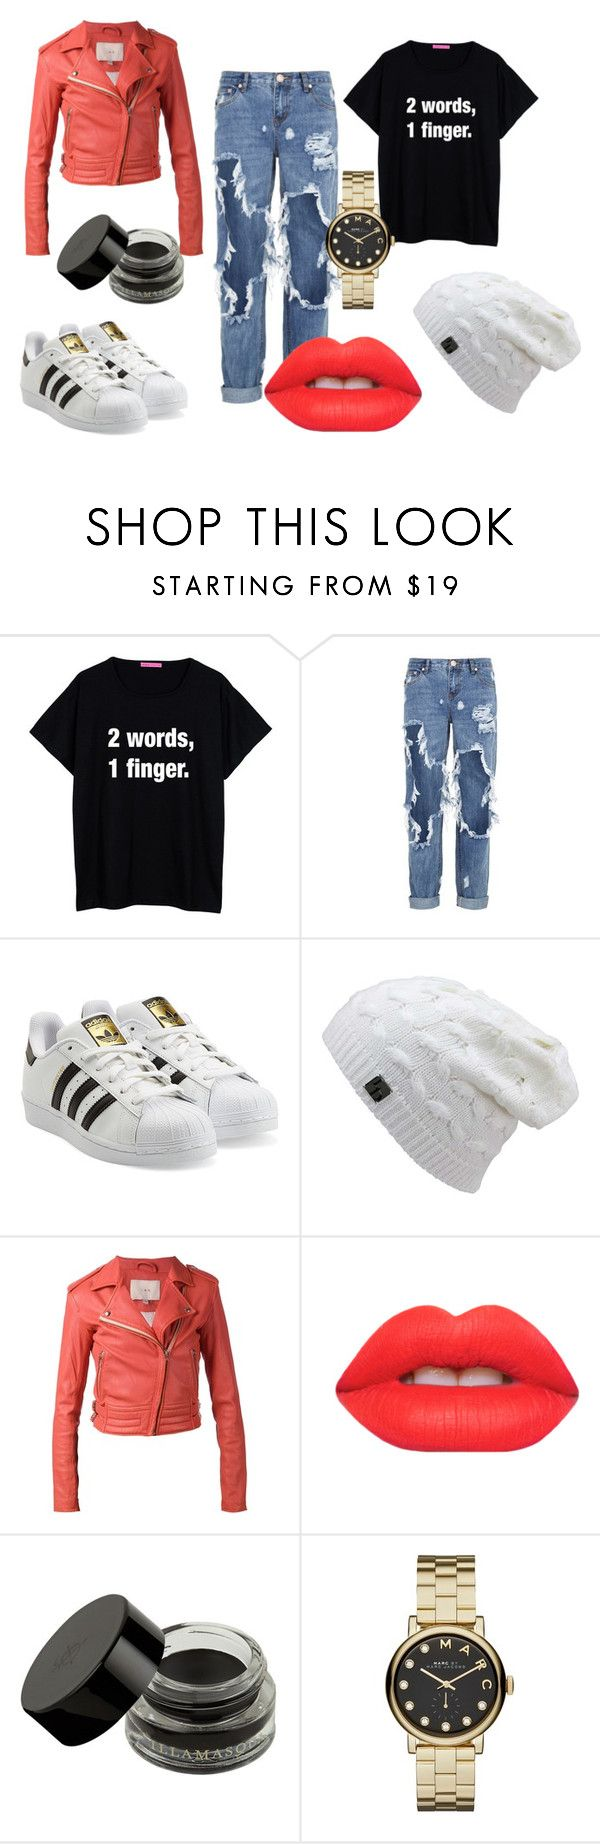 hood by raluca-belu on Polyvore featuring IRO, adidas Originals, One Teaspoon, Marc by Marc Jacobs and Lime Crime